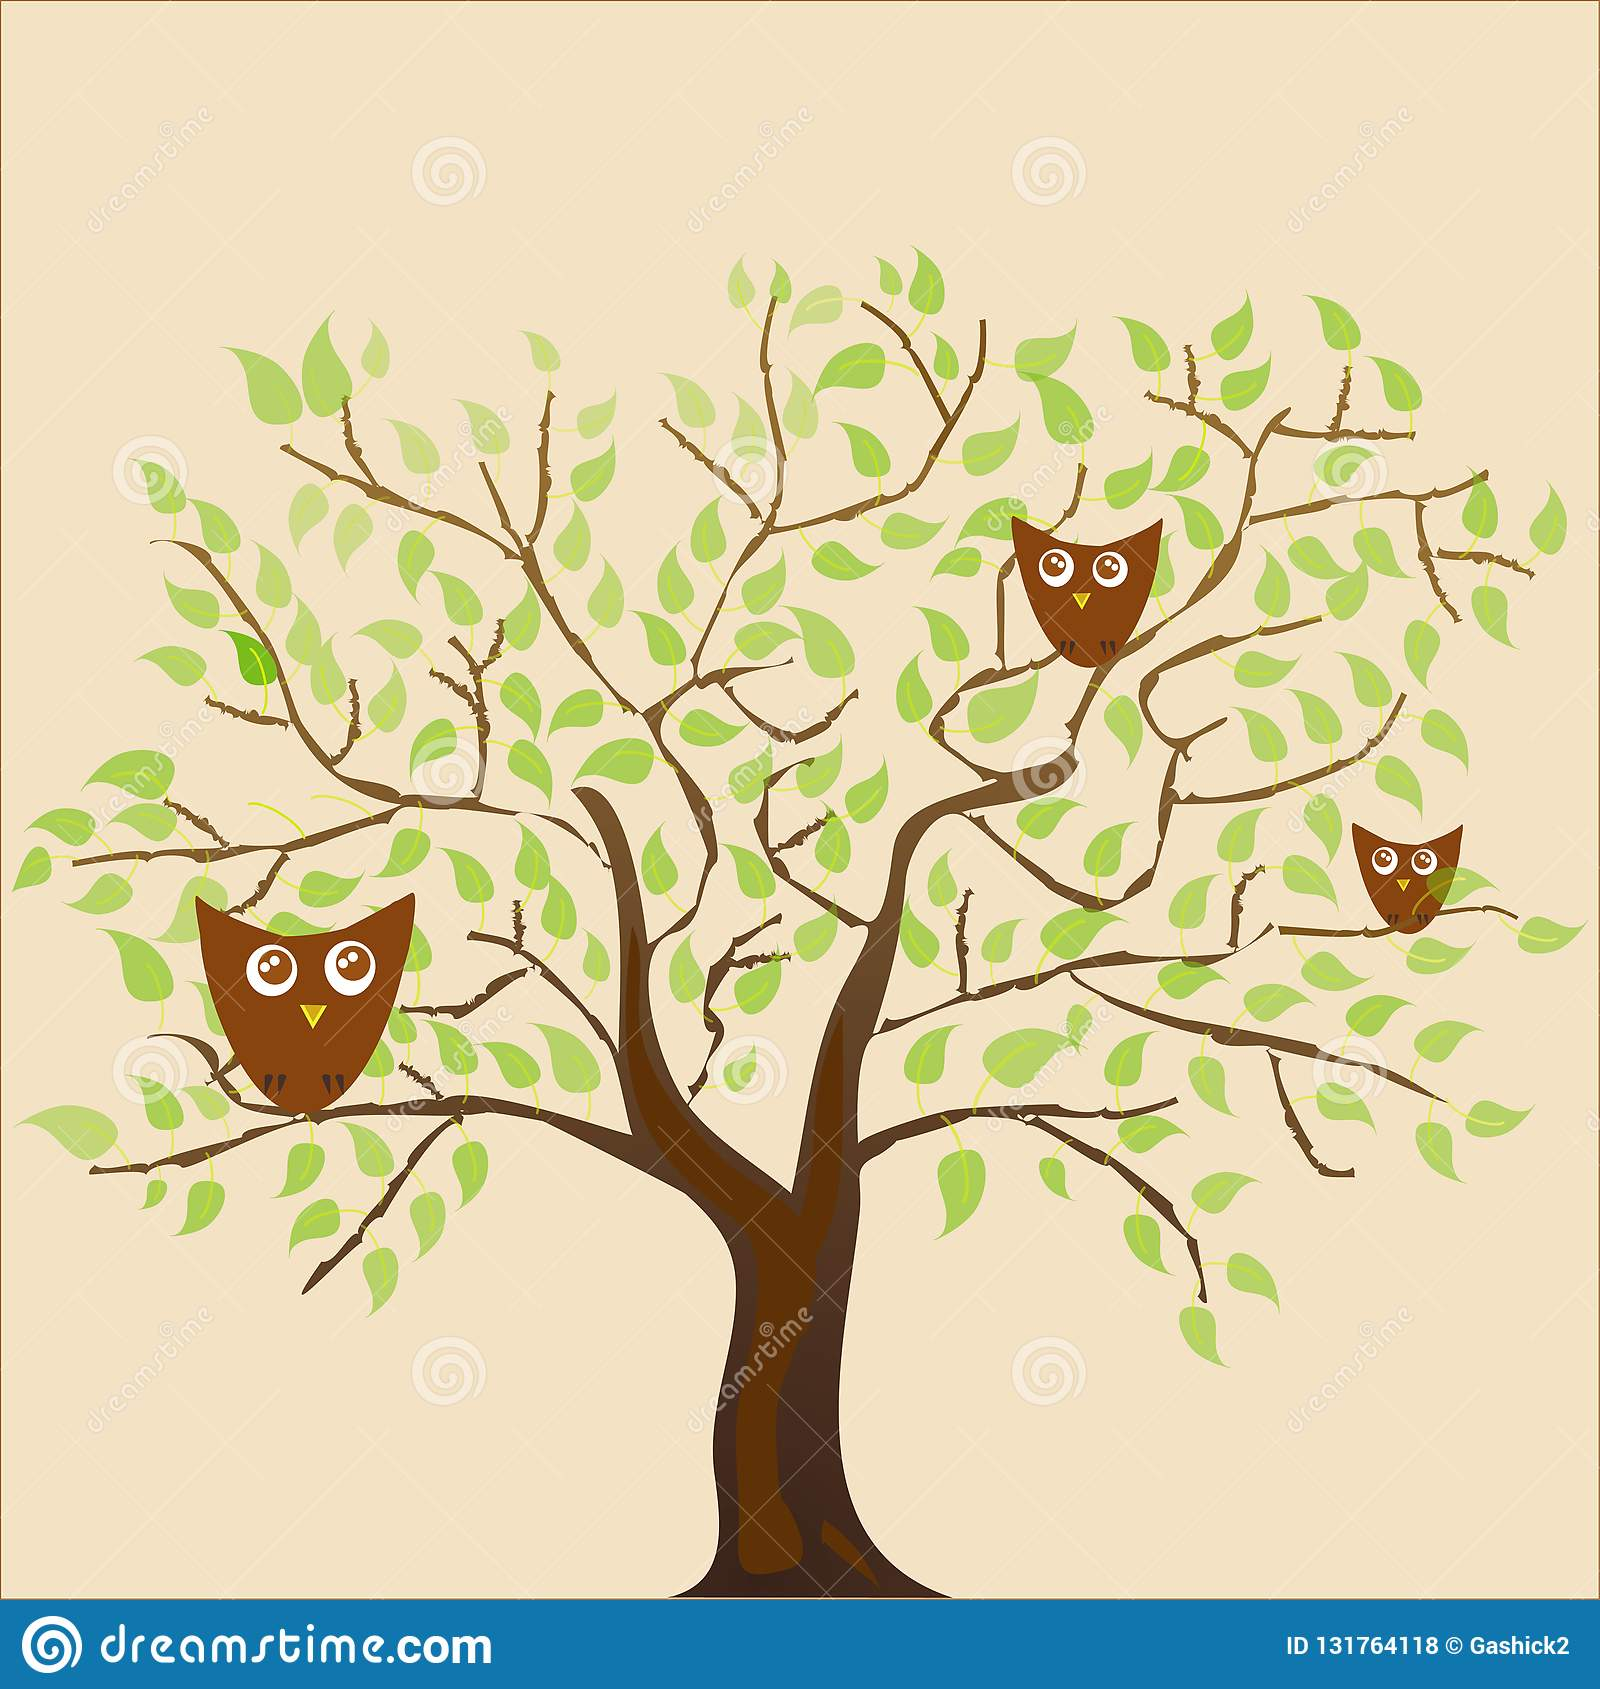 Stylized plants and many vector owls, festive coffee and leaves pattern on beige background